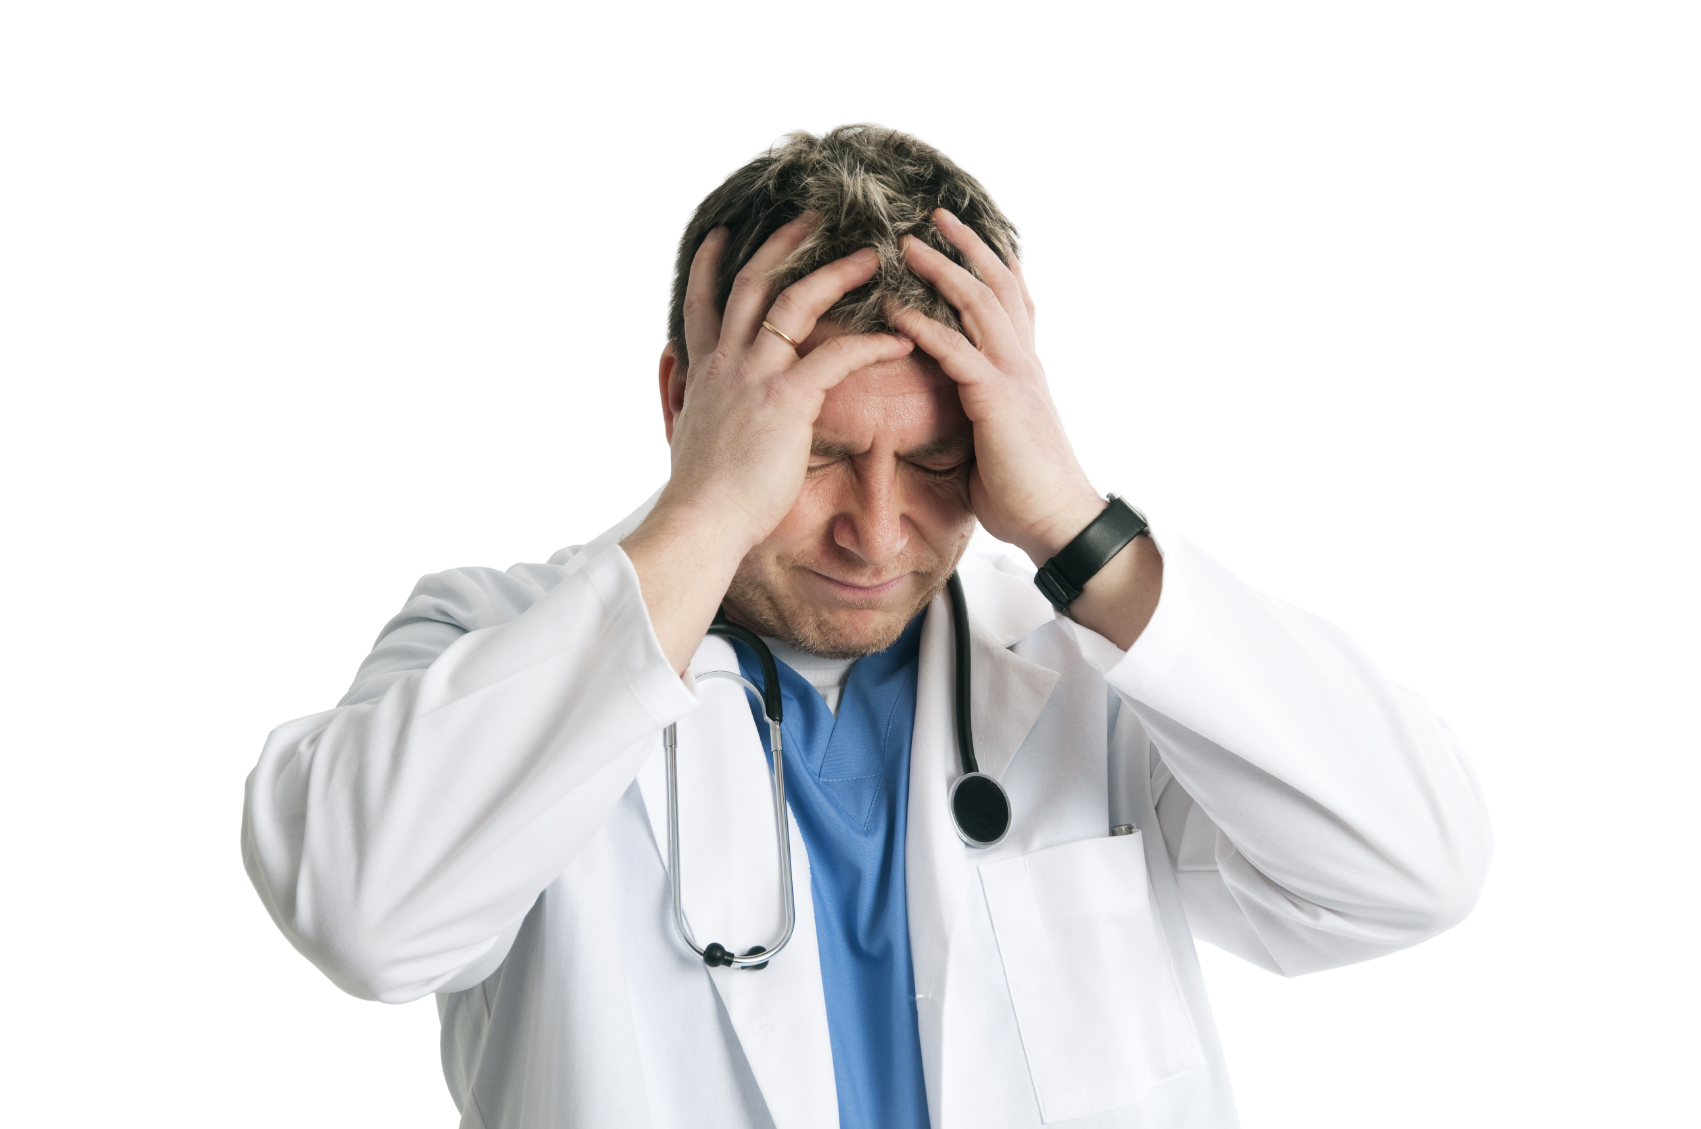 frustrated-doc.jpg